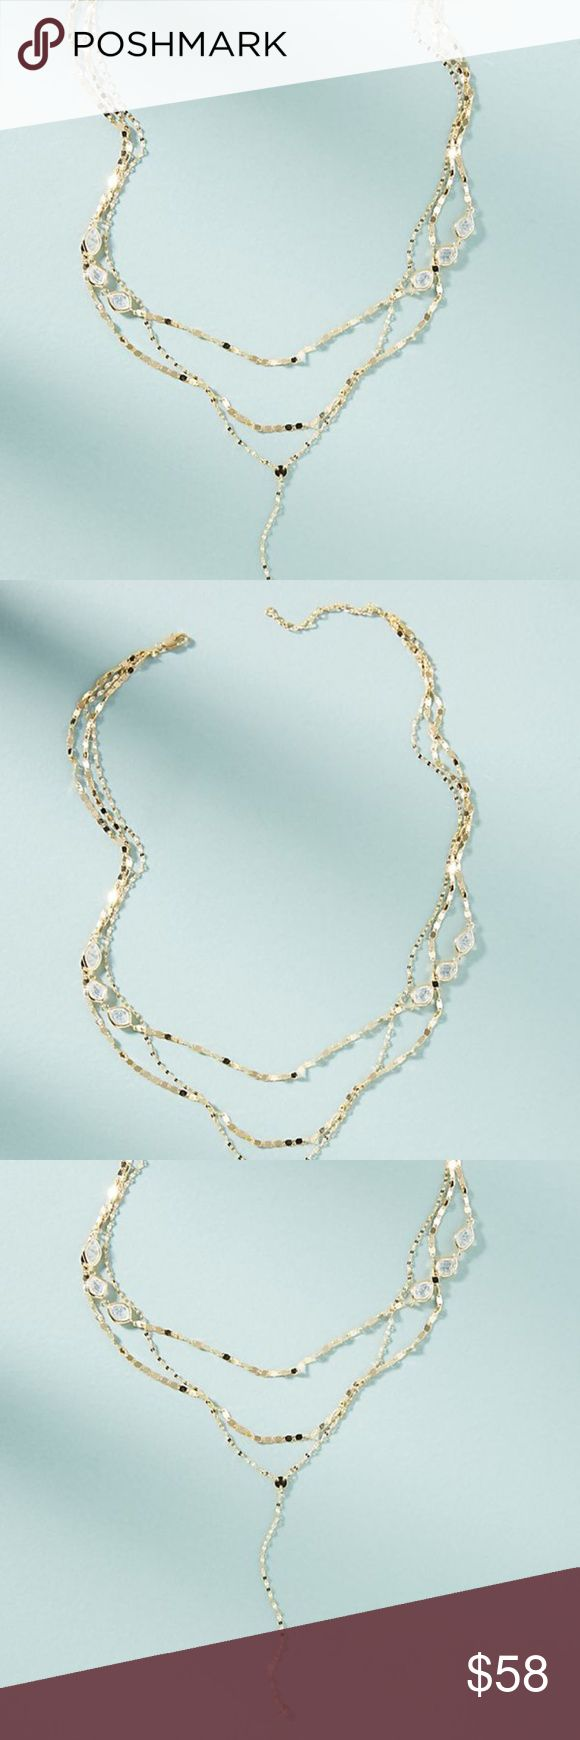 Anthropologie Janis Crystal Layered Necklace NWT Anthropologie Janis Layered Y-Necklace Brand new with tag, completely sold out in stores. Glass beads shimmer and shine on this beautifully layered necklace - it's a delicate yet statement-making addition to any outfit. For sale is the blue colored glass crystal dainty gold tone necklace. So so pretty!  Priced at 58 and ready to drop price to 52 so that you can get discounted shipping. just message me if you are ready to purchase.   Lobster…